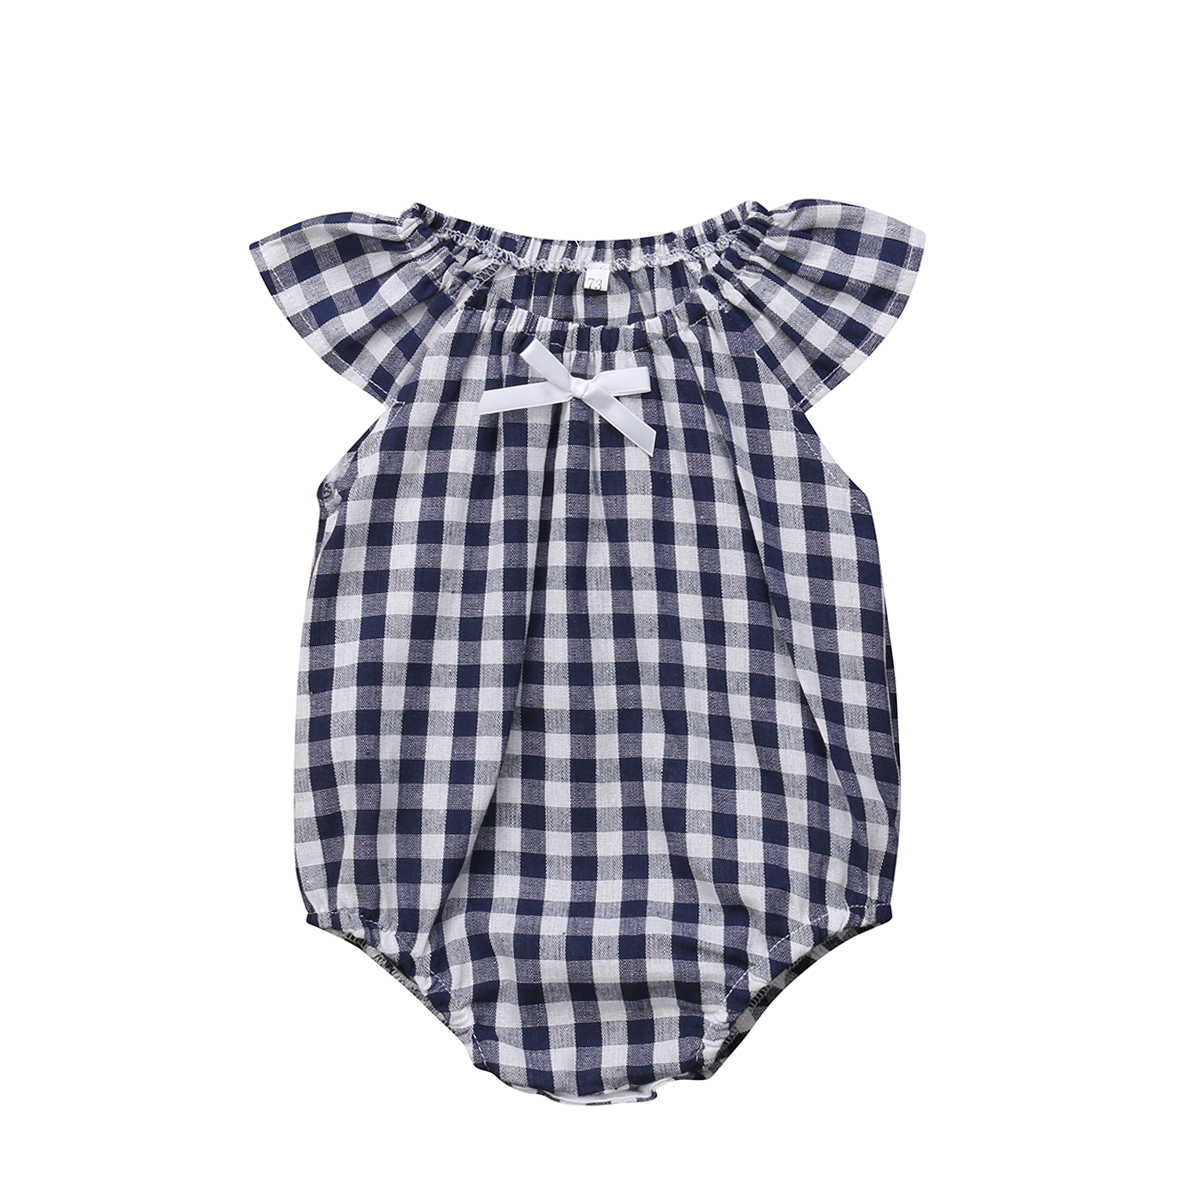 Pudcoco 2018 New Baby Girl   Rompers   Gray Plaid Newborn Infant Baby Girls Christmas   Rompers   Jumpsuit Playsuit